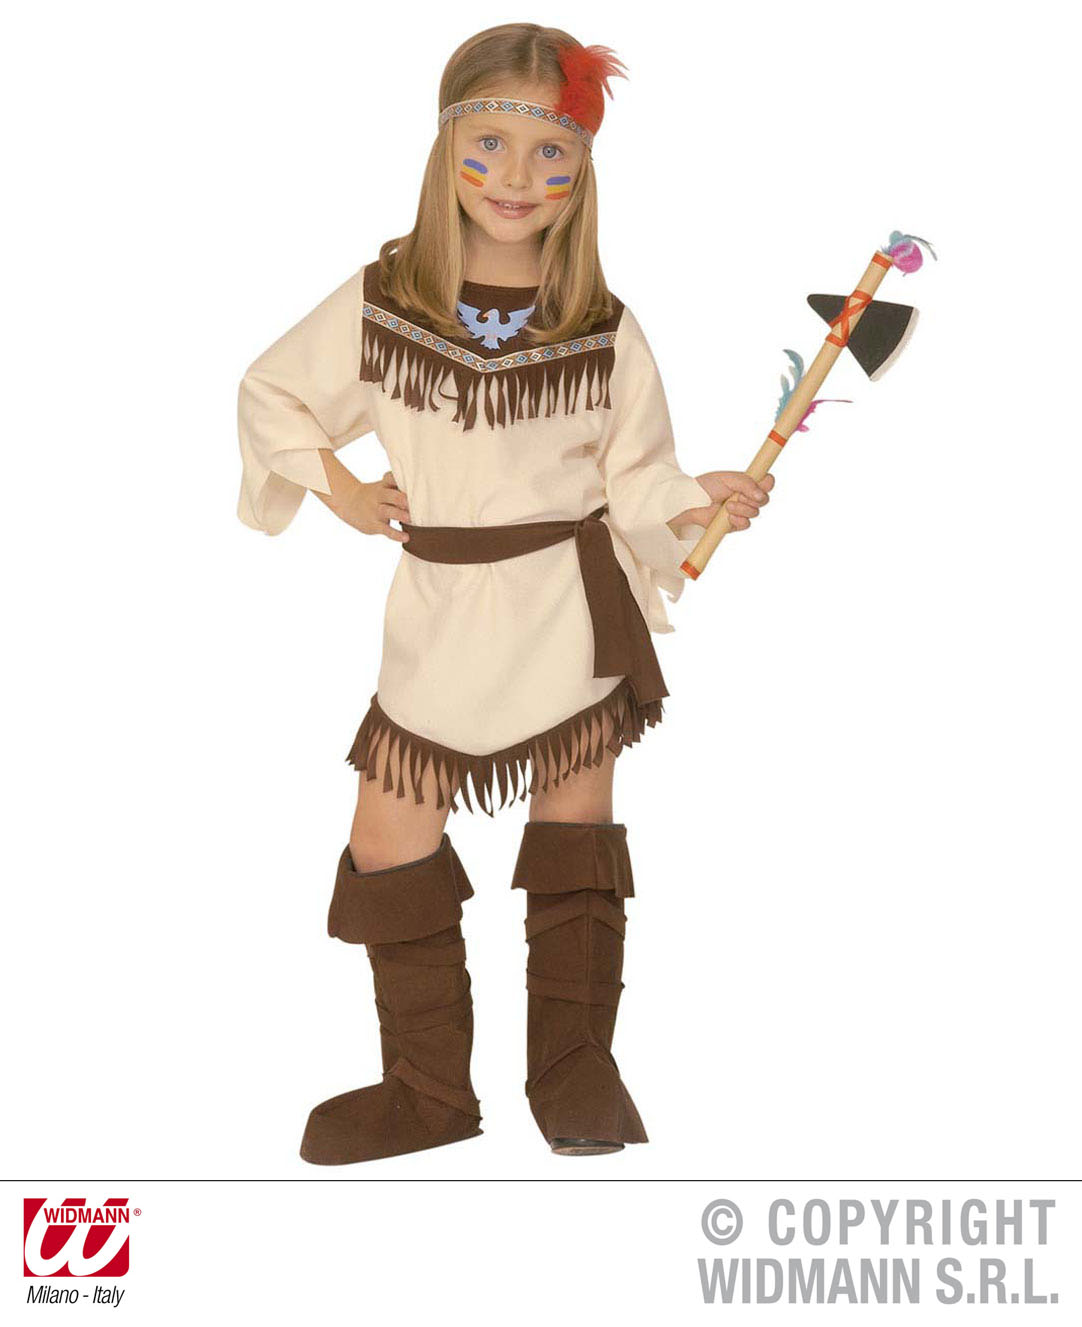 kinder indianer m dchen schick kleidung kost m pocahontas outfit 3 4 jahre kleid ebay. Black Bedroom Furniture Sets. Home Design Ideas